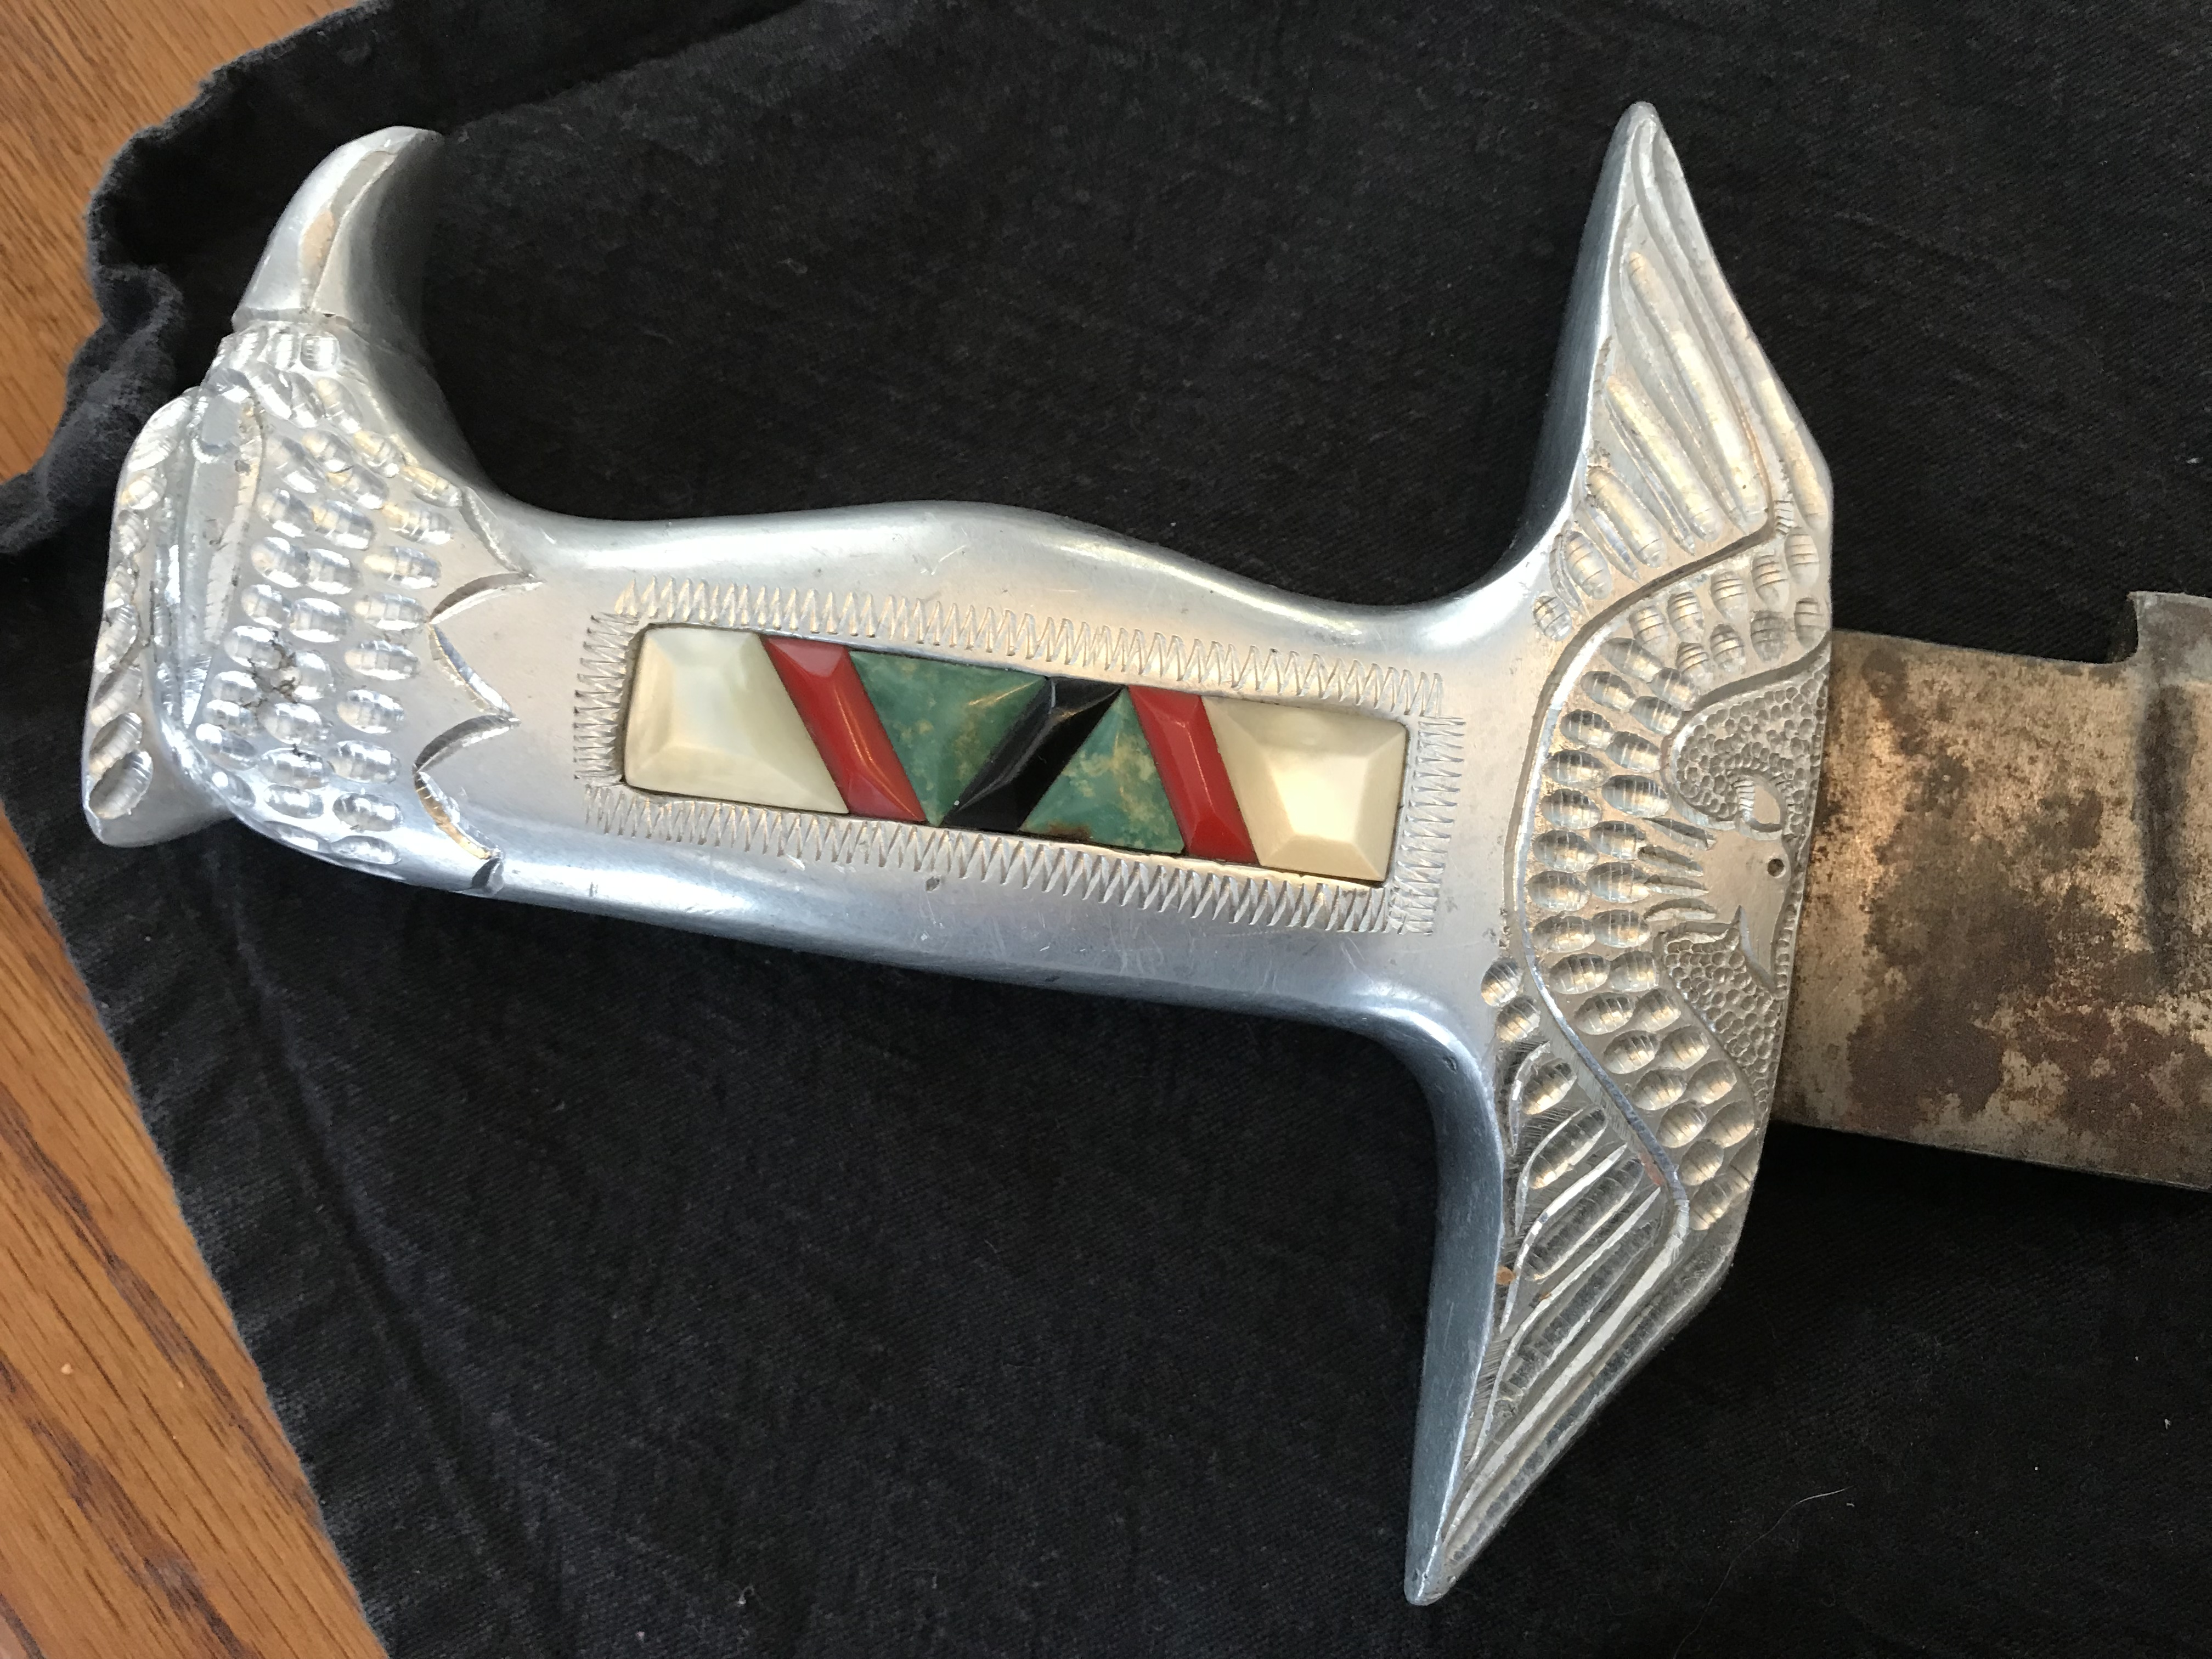 Is this knife worth anything?-42e1bd5a-26fe-4aff-a286-4779bf102d2f.jpeg